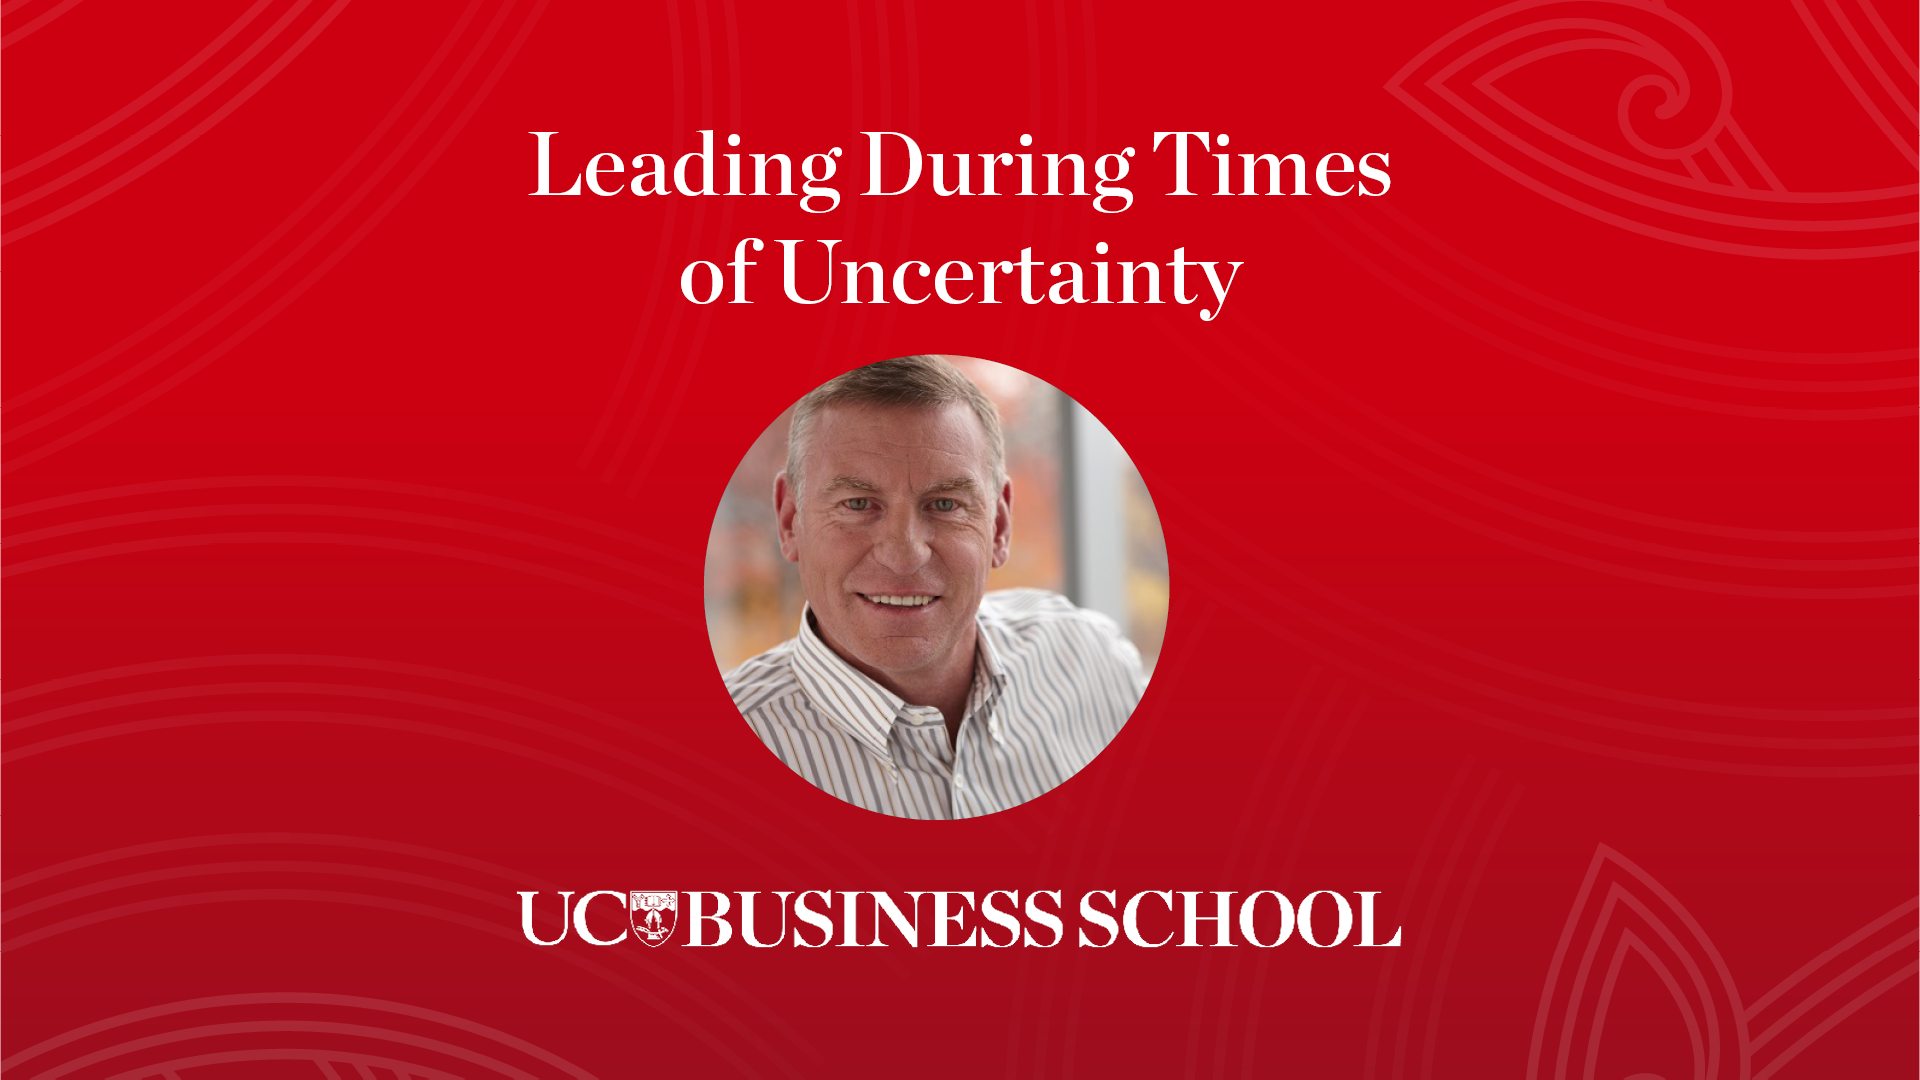 Glenn Renwick - Leading During Times of Uncertainty